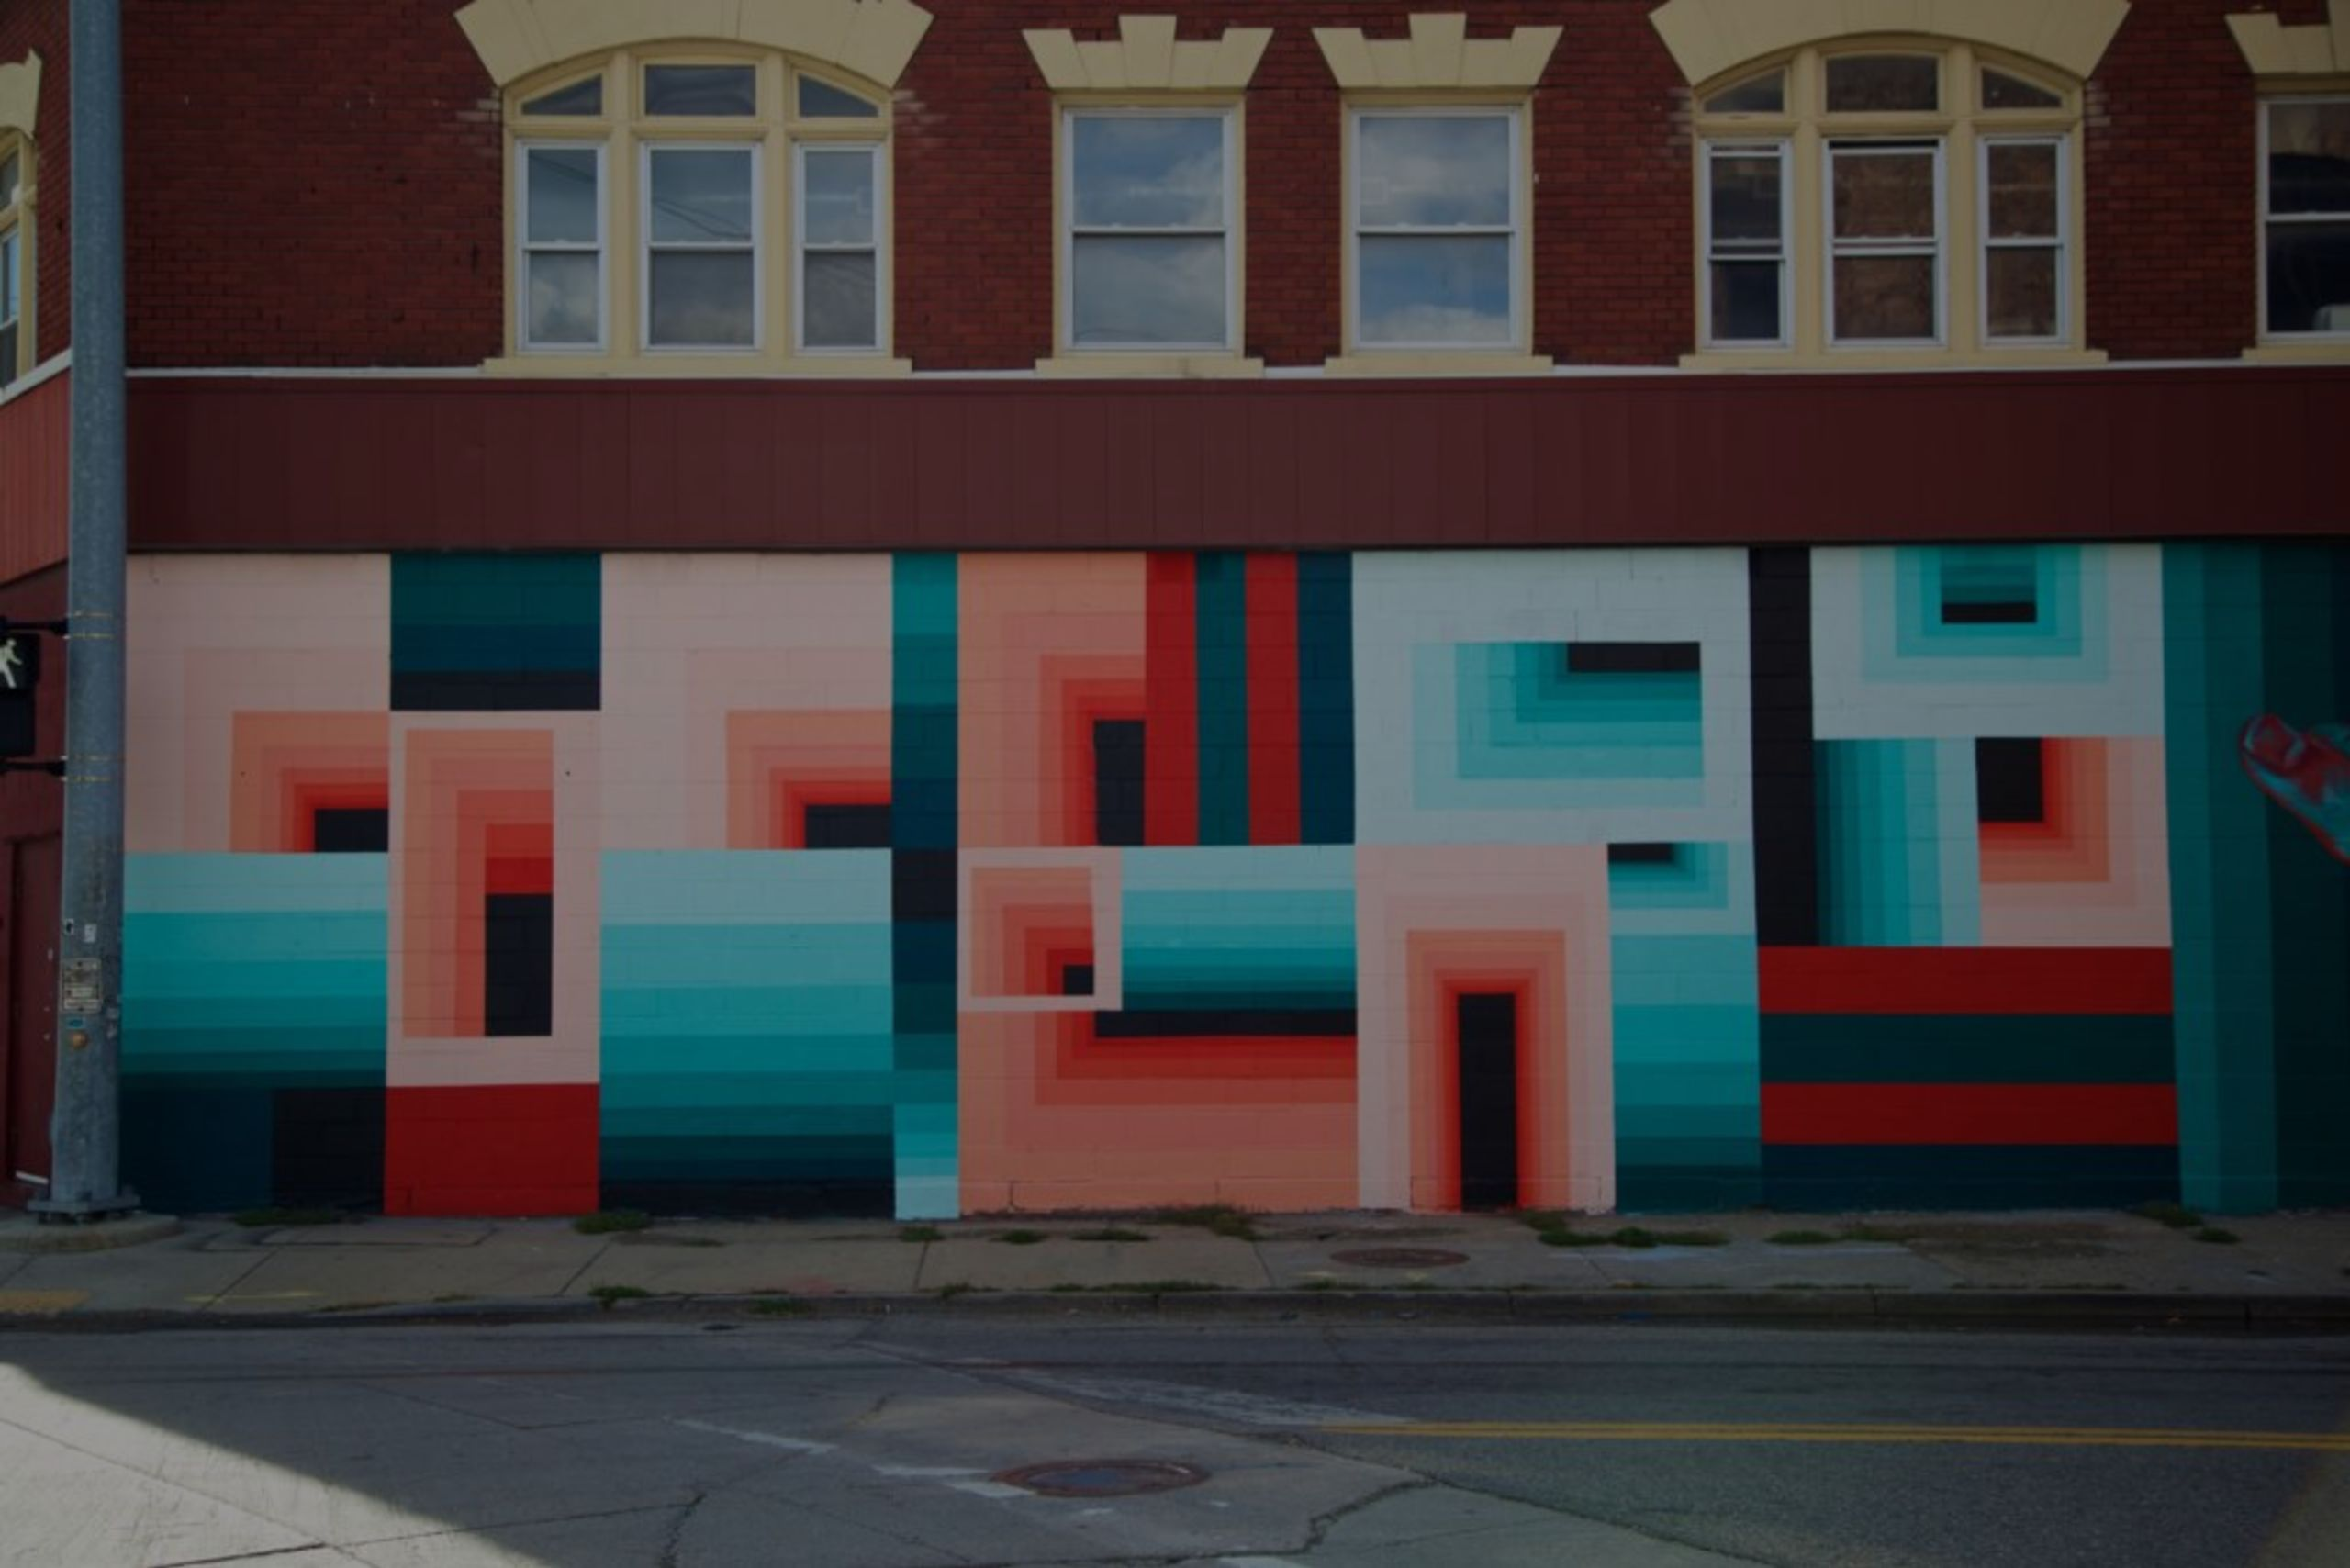 40+ new murals created over 10 days in Detroit's Eastern Market district (Via 1XRUN)